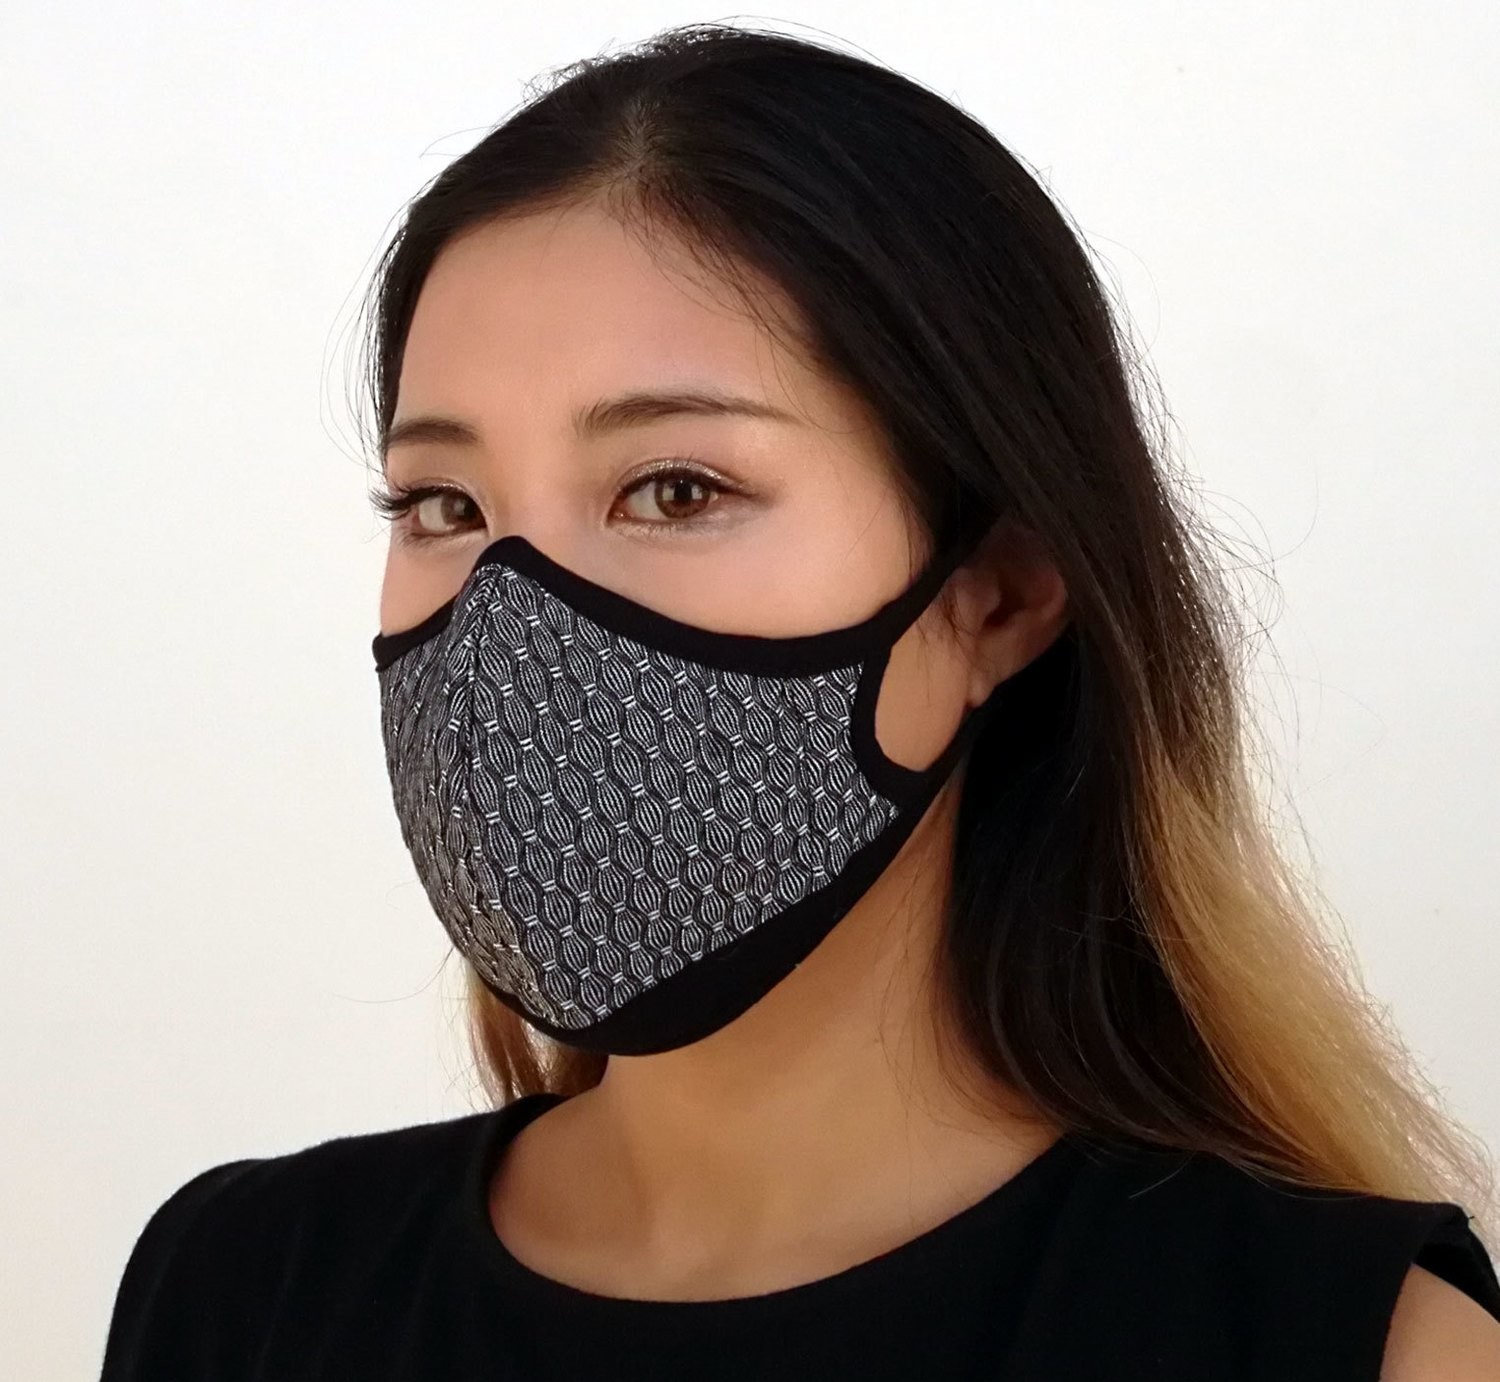 Air Bamboo Diamond Pollution 99 Bali Organic In 5 Worldwide At 99 Protection Facemask • Pm2 From Free Made Sustainably Style Shipping